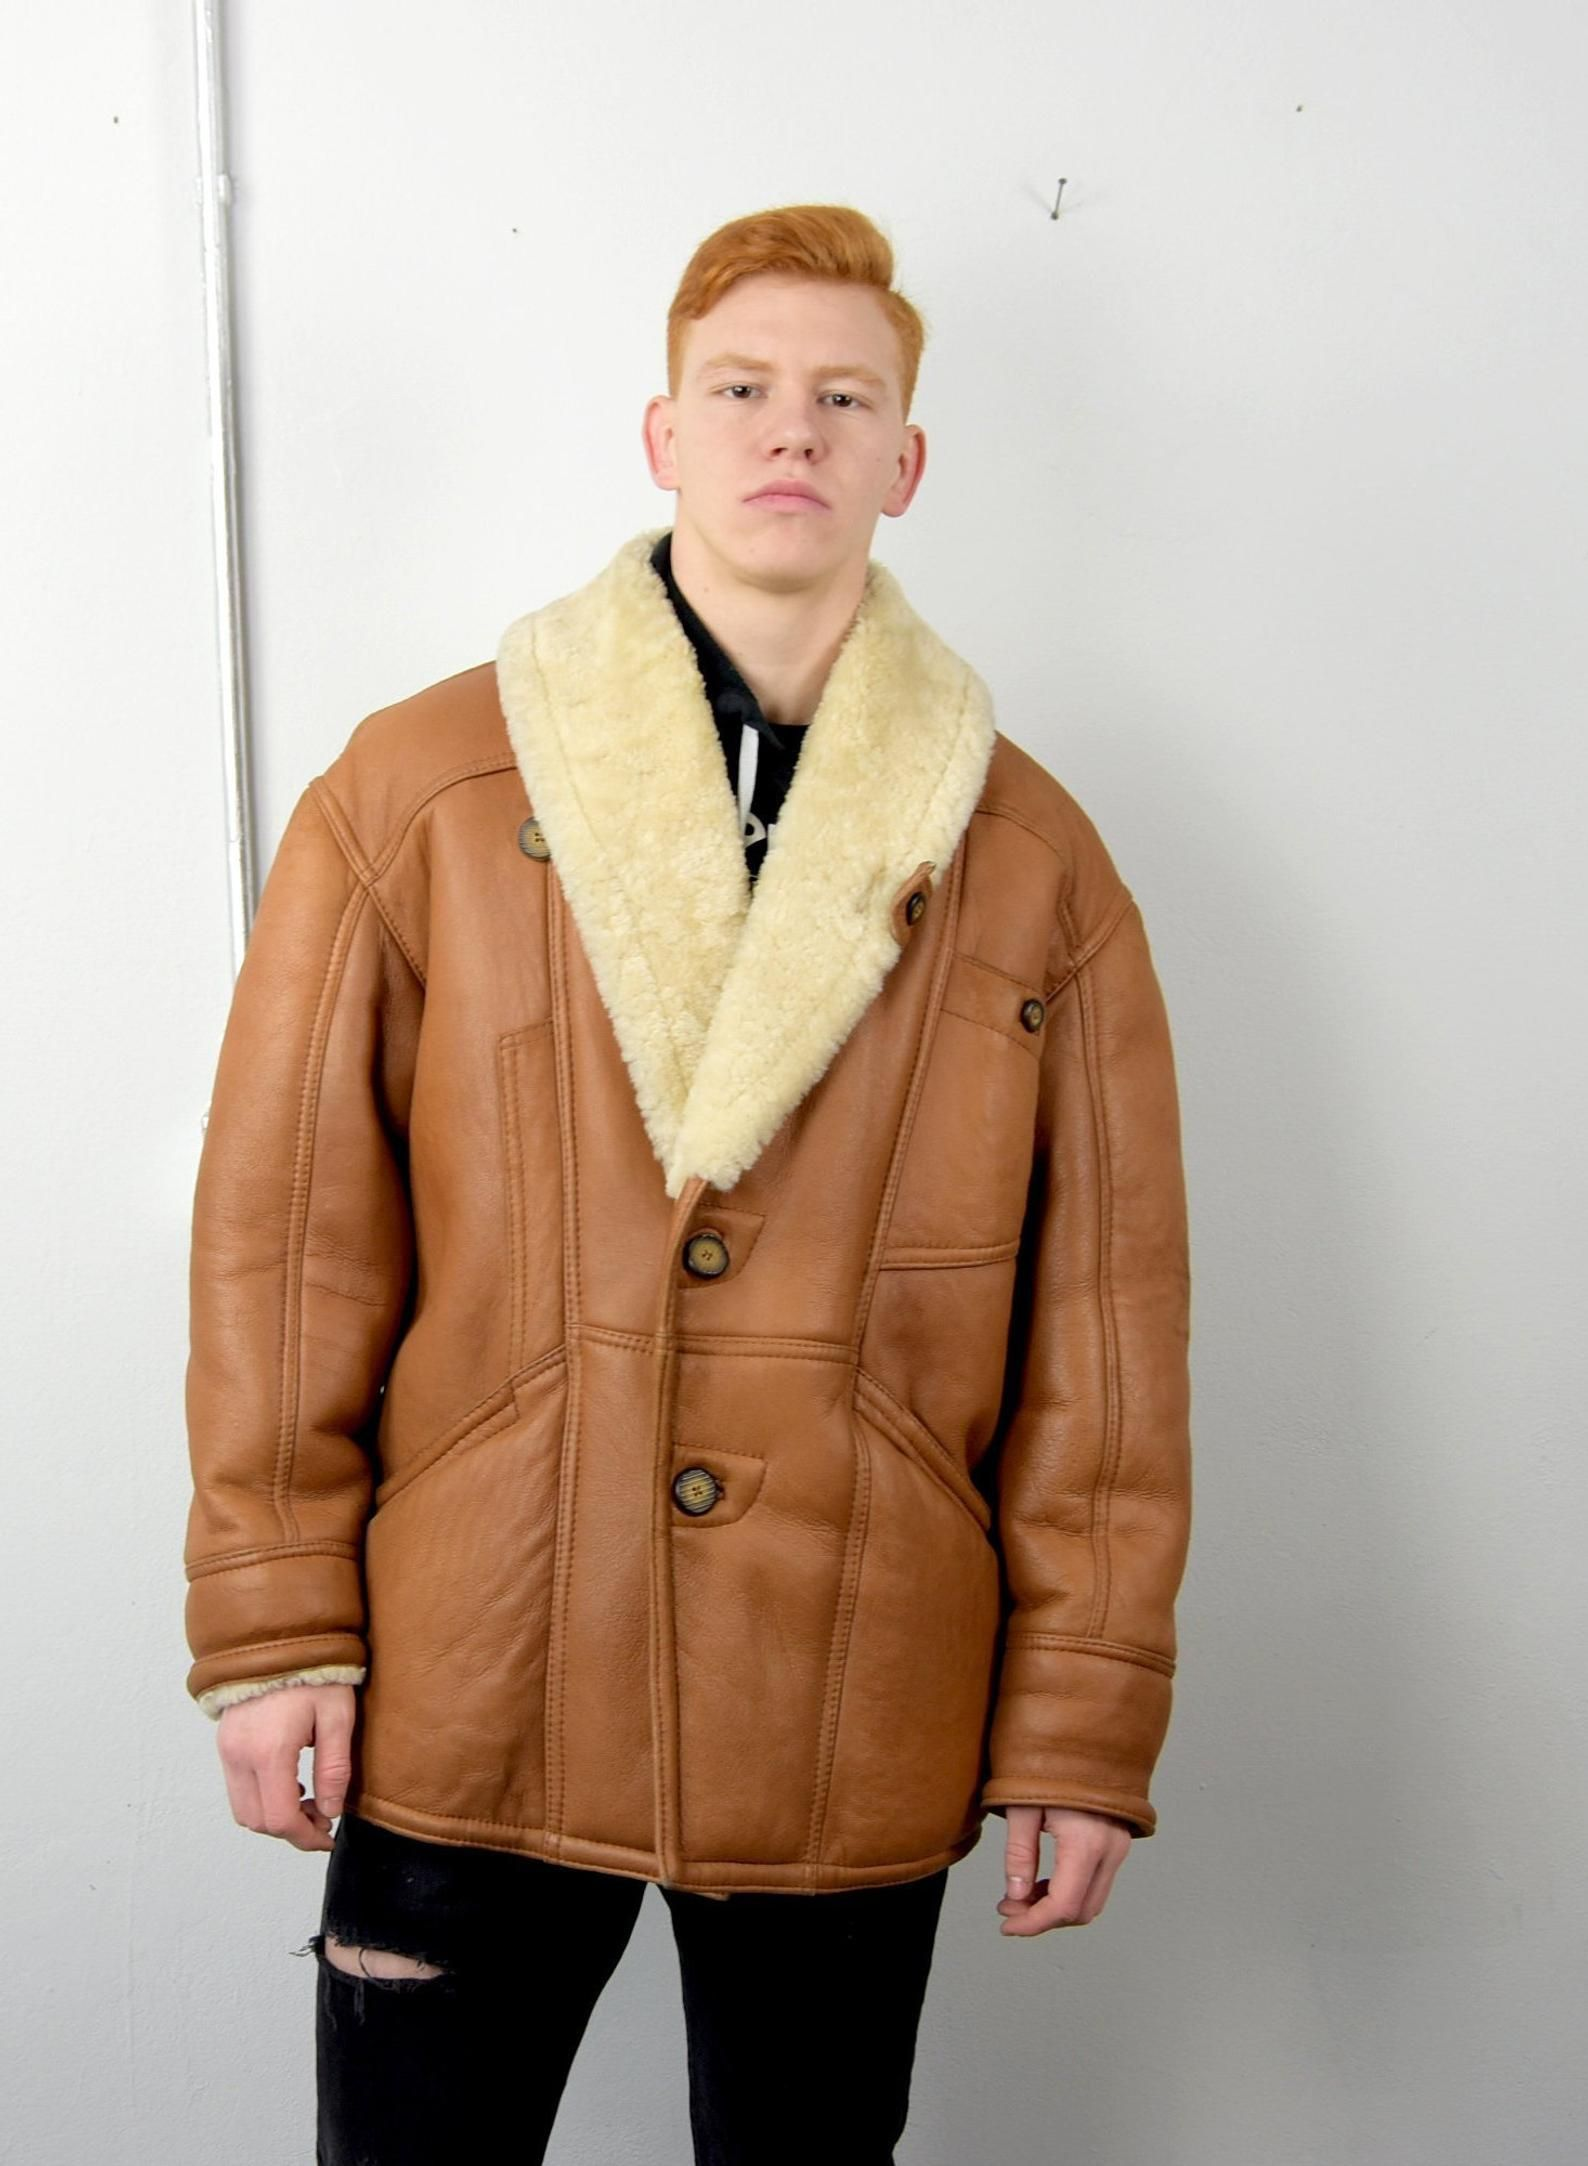 Men's Shearling Jacket.Men Sheepskin Coat 1970's Real